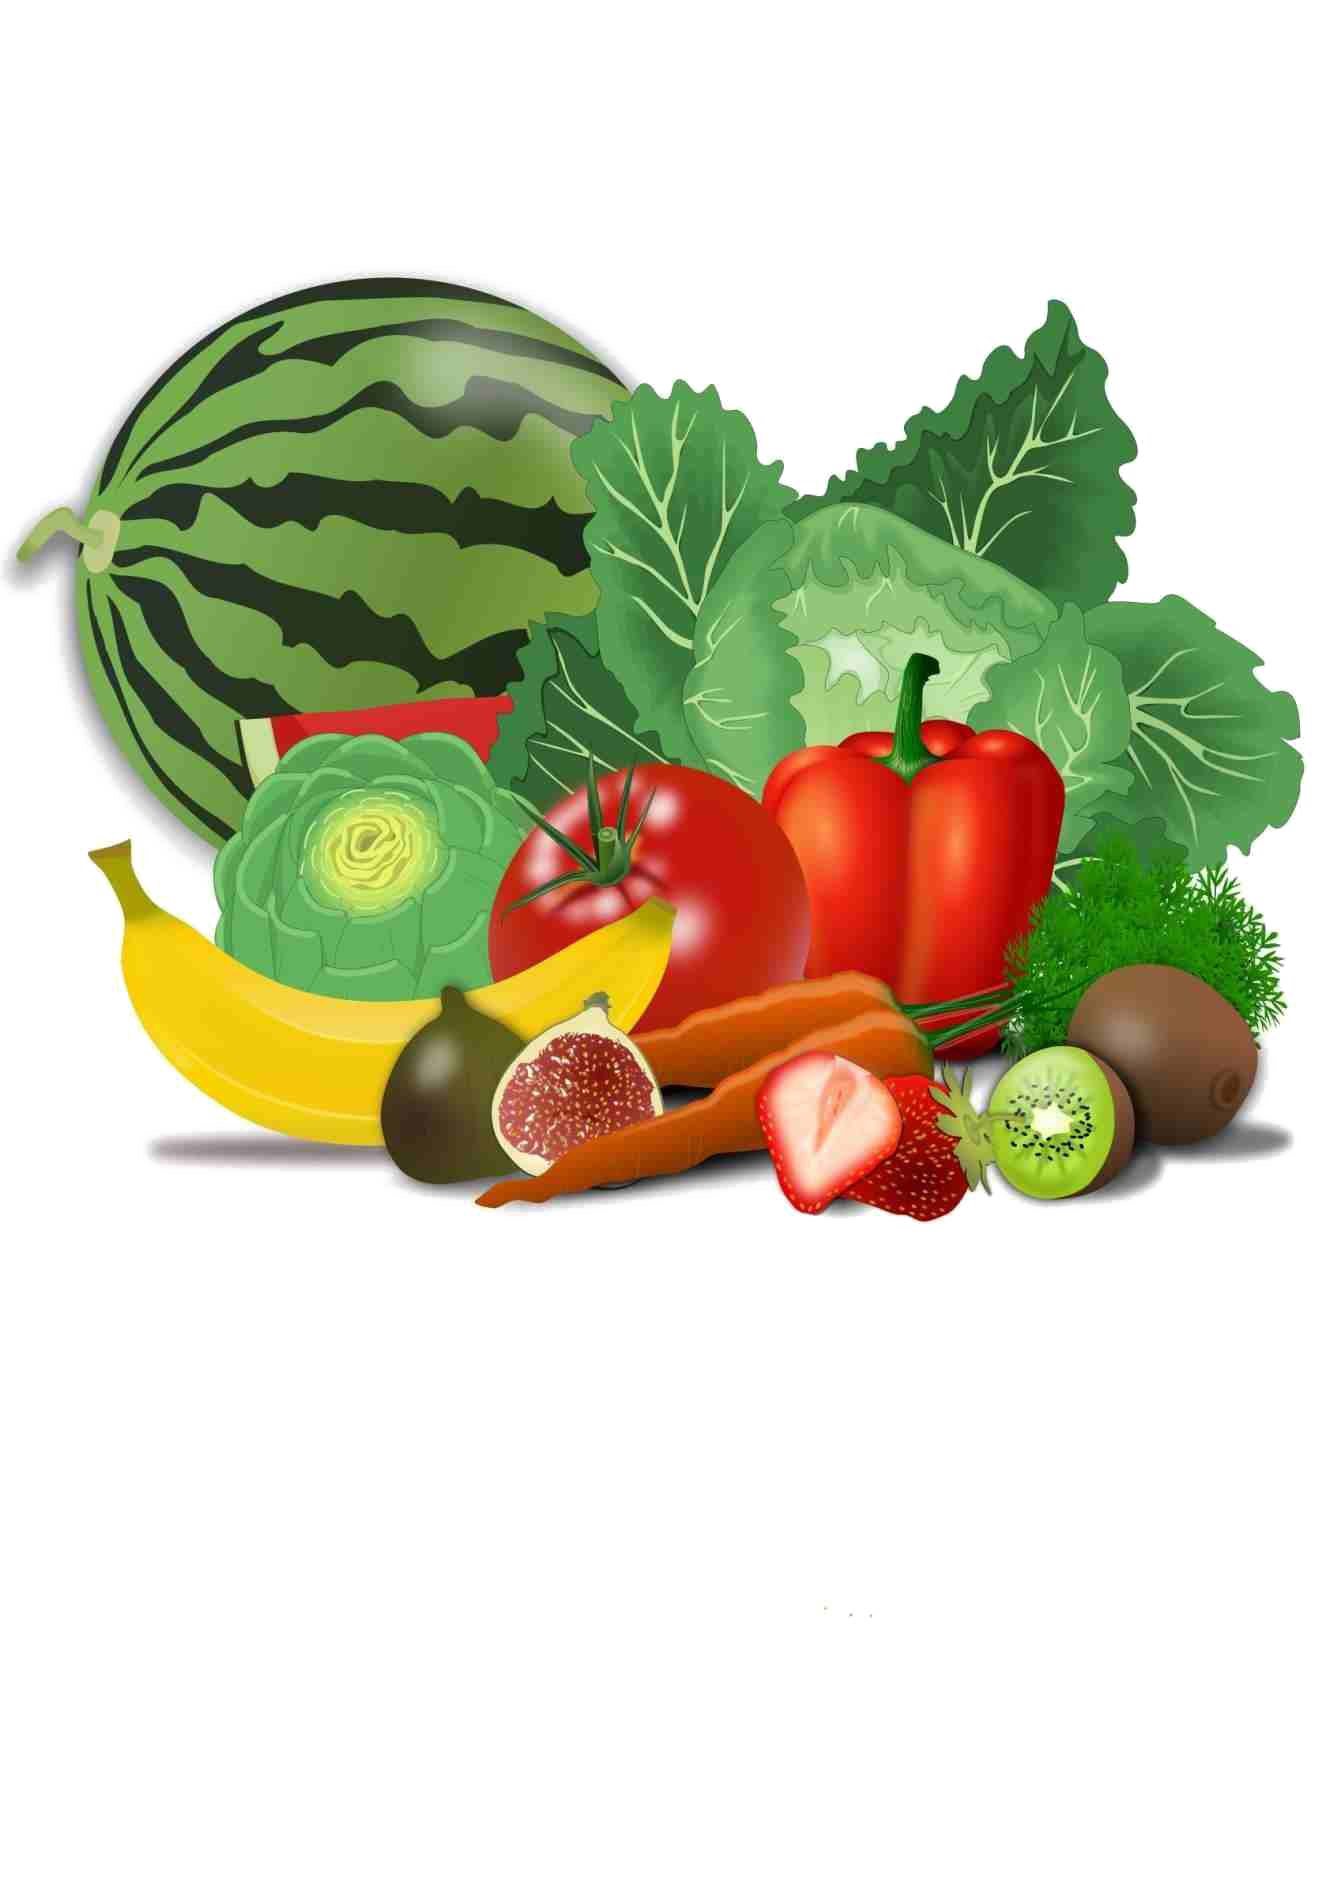 Healthy Food PNG Images Transparent Free Download.